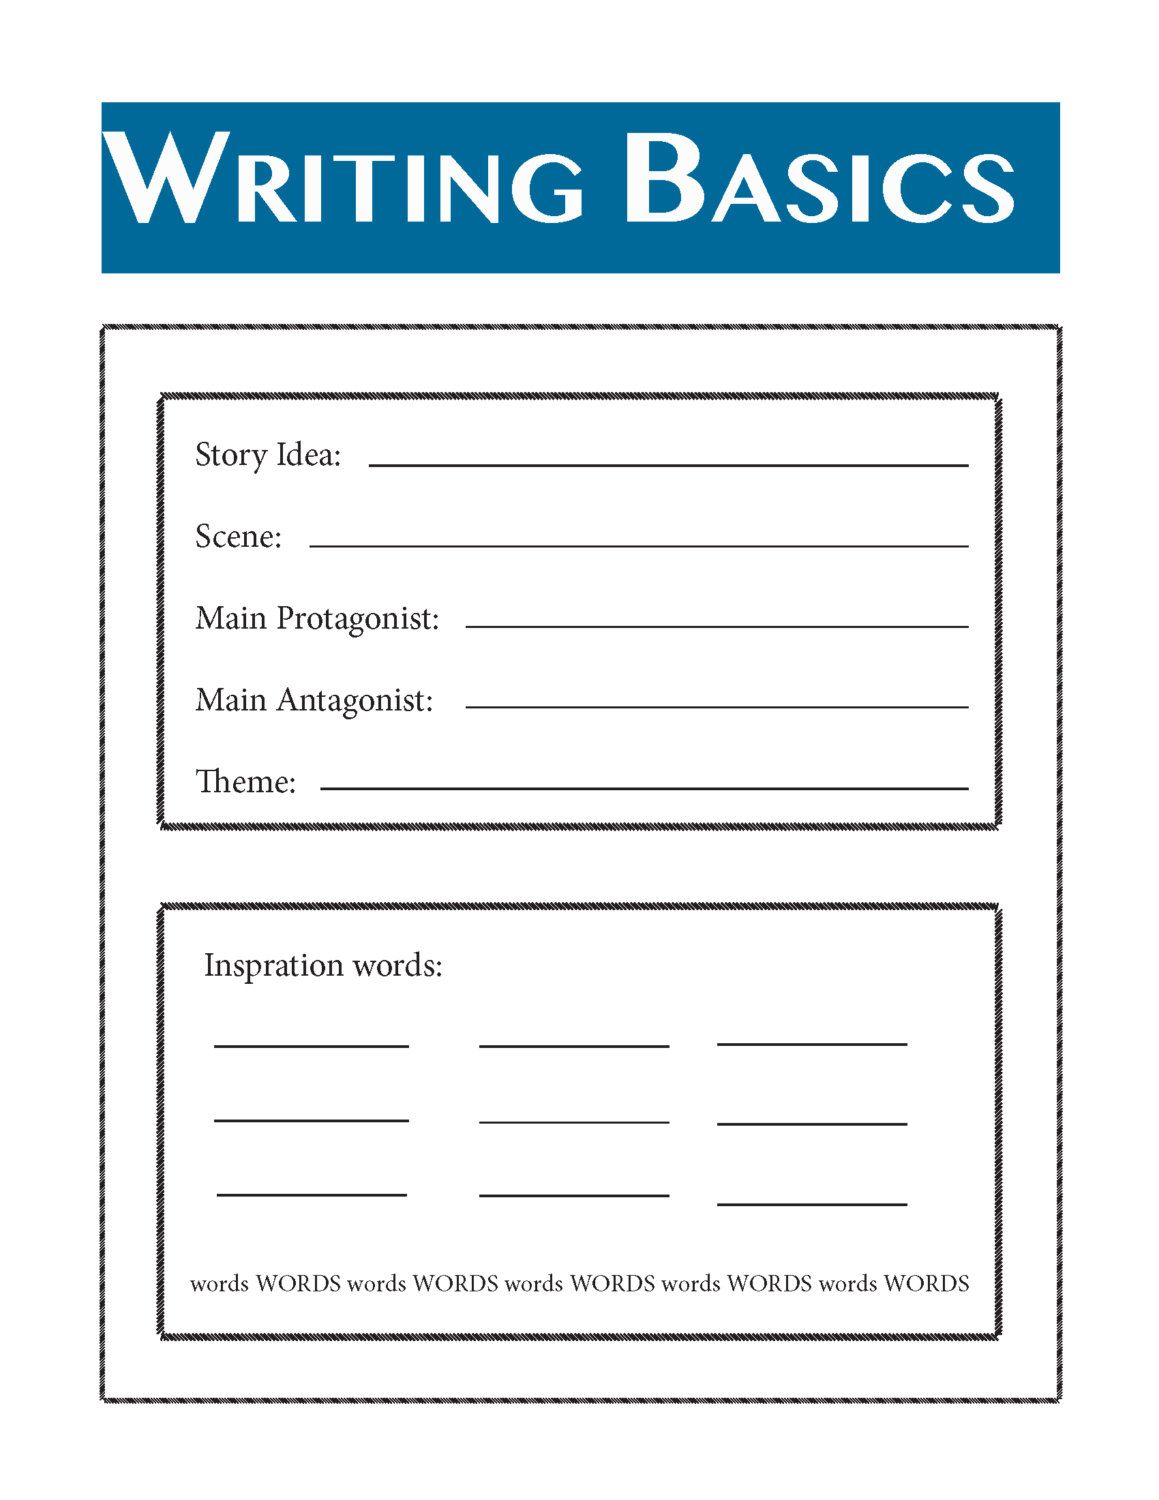 Writing Your Novel Writing Basics By Proseplanner On Etsy